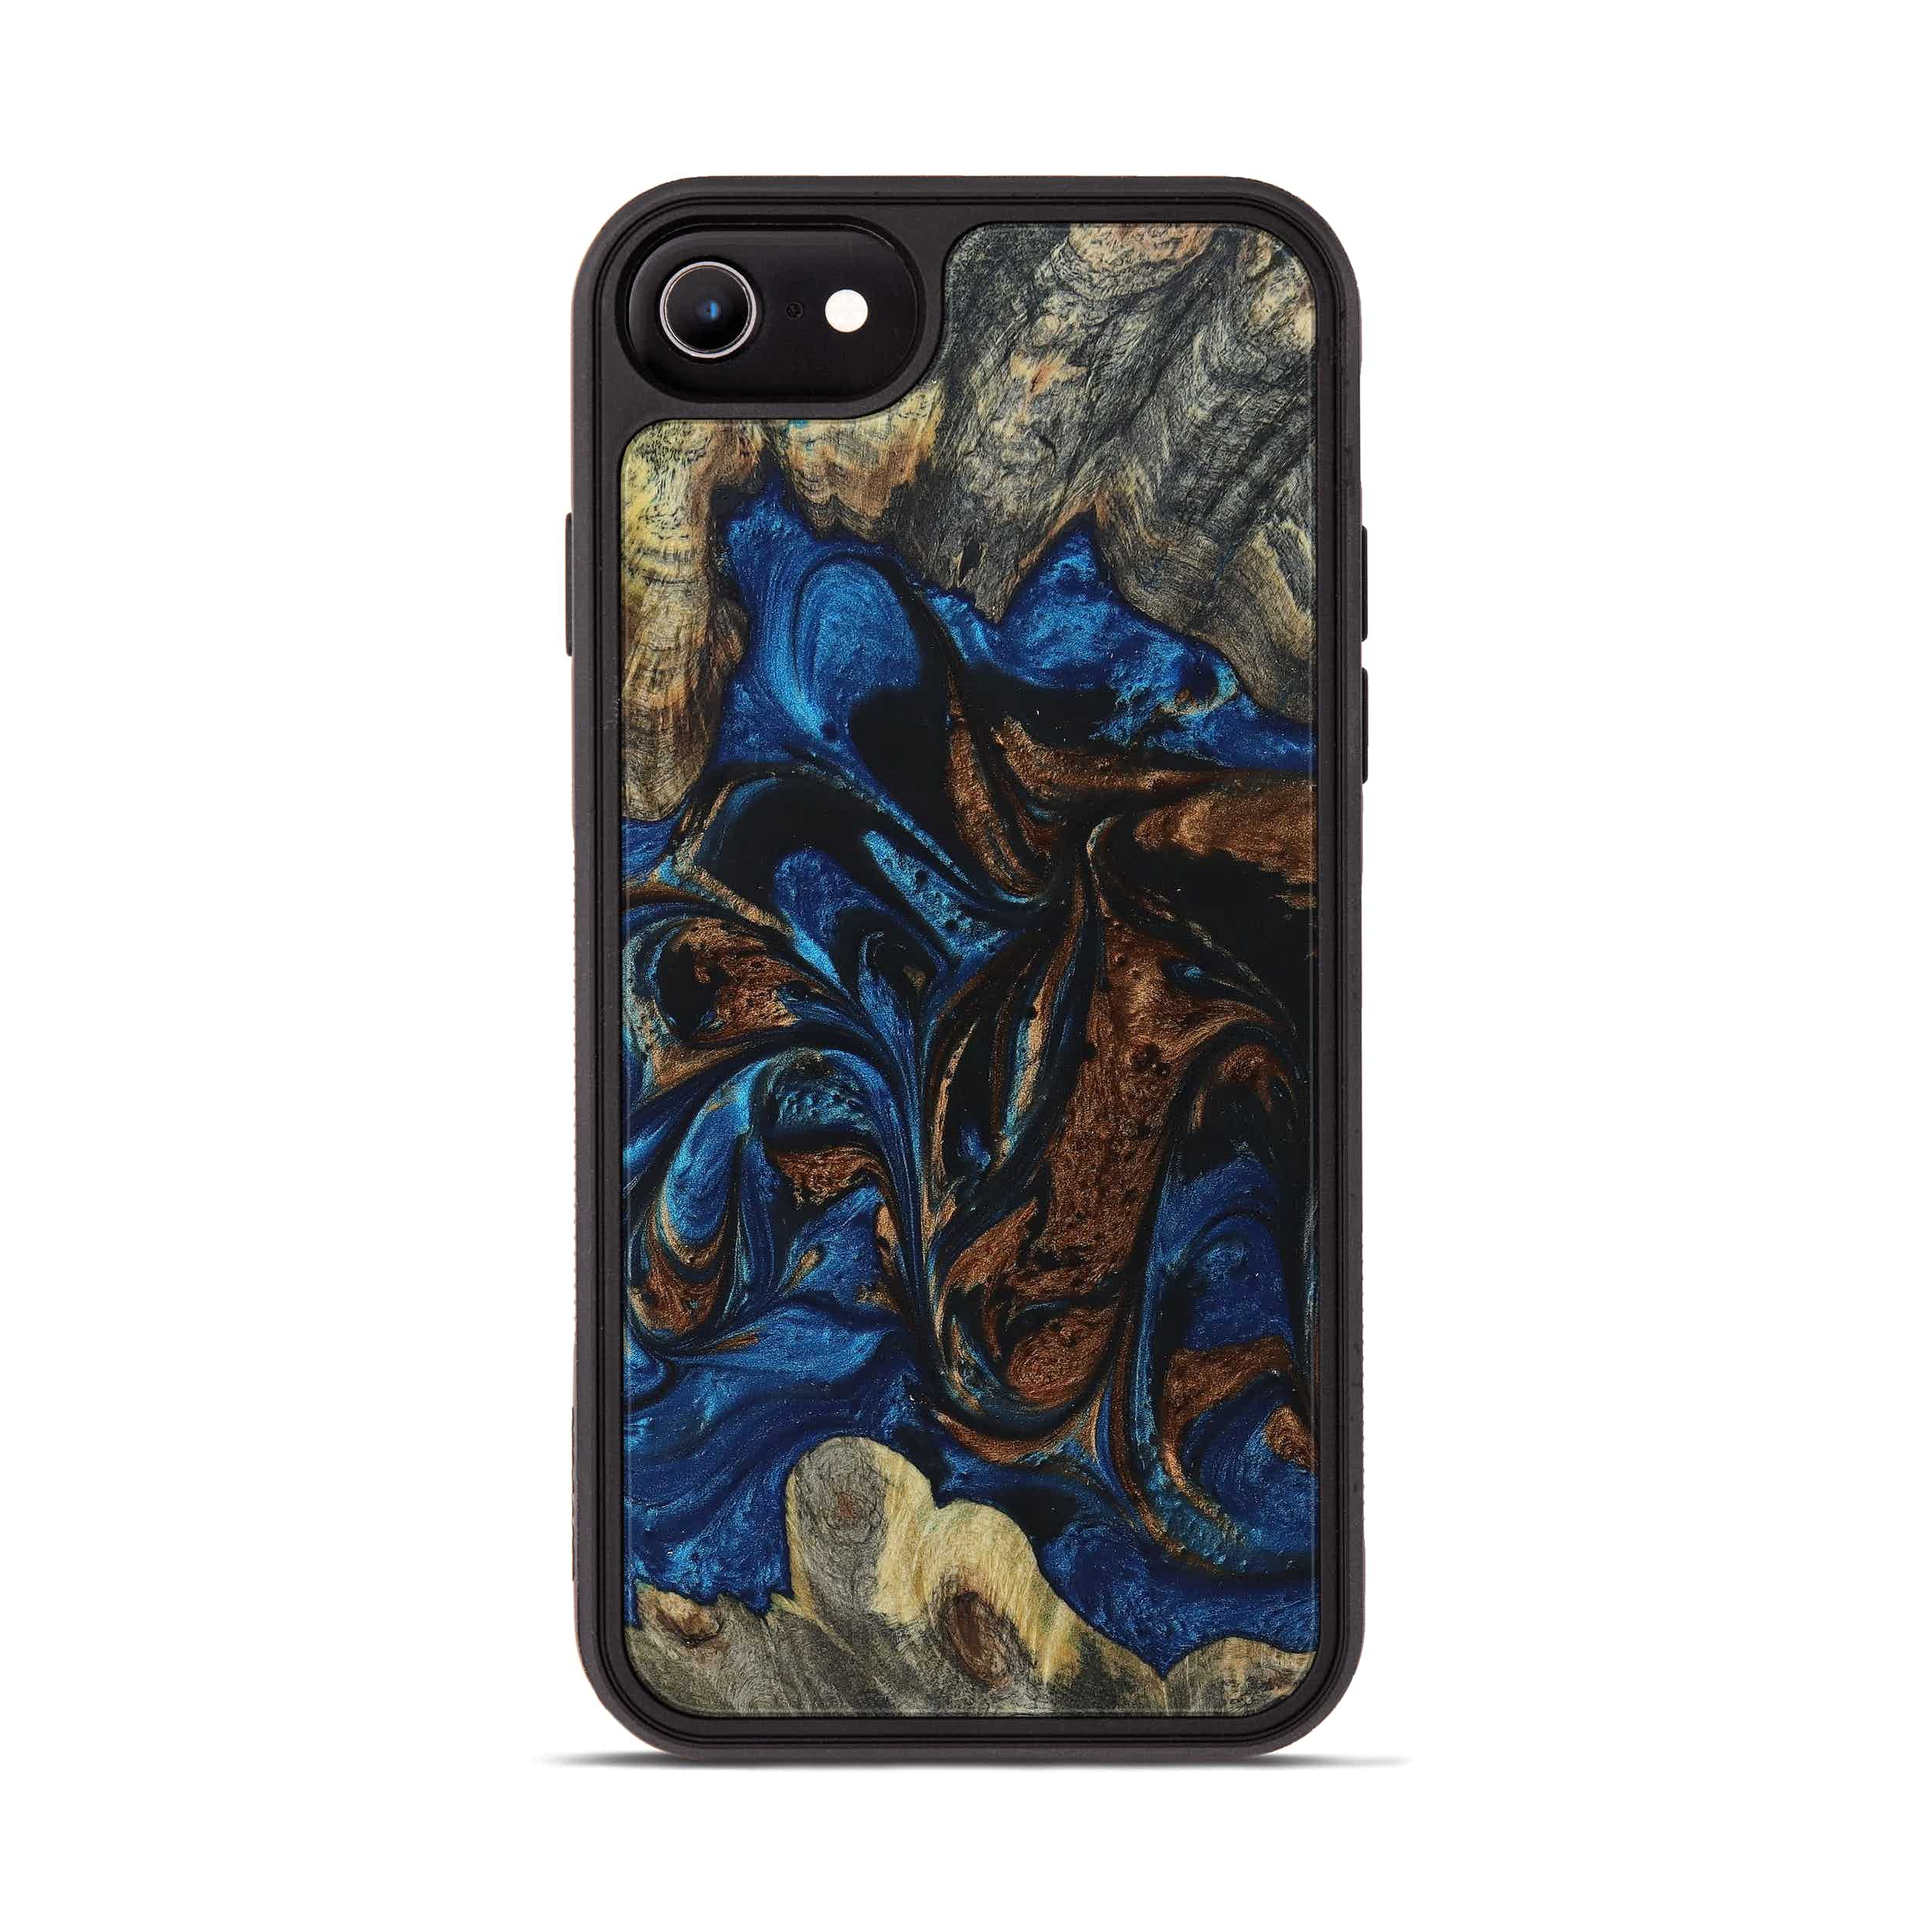 iPhone 8 Wood+Resin Phone Case - Lynnell (Teal & Gold, 394590)